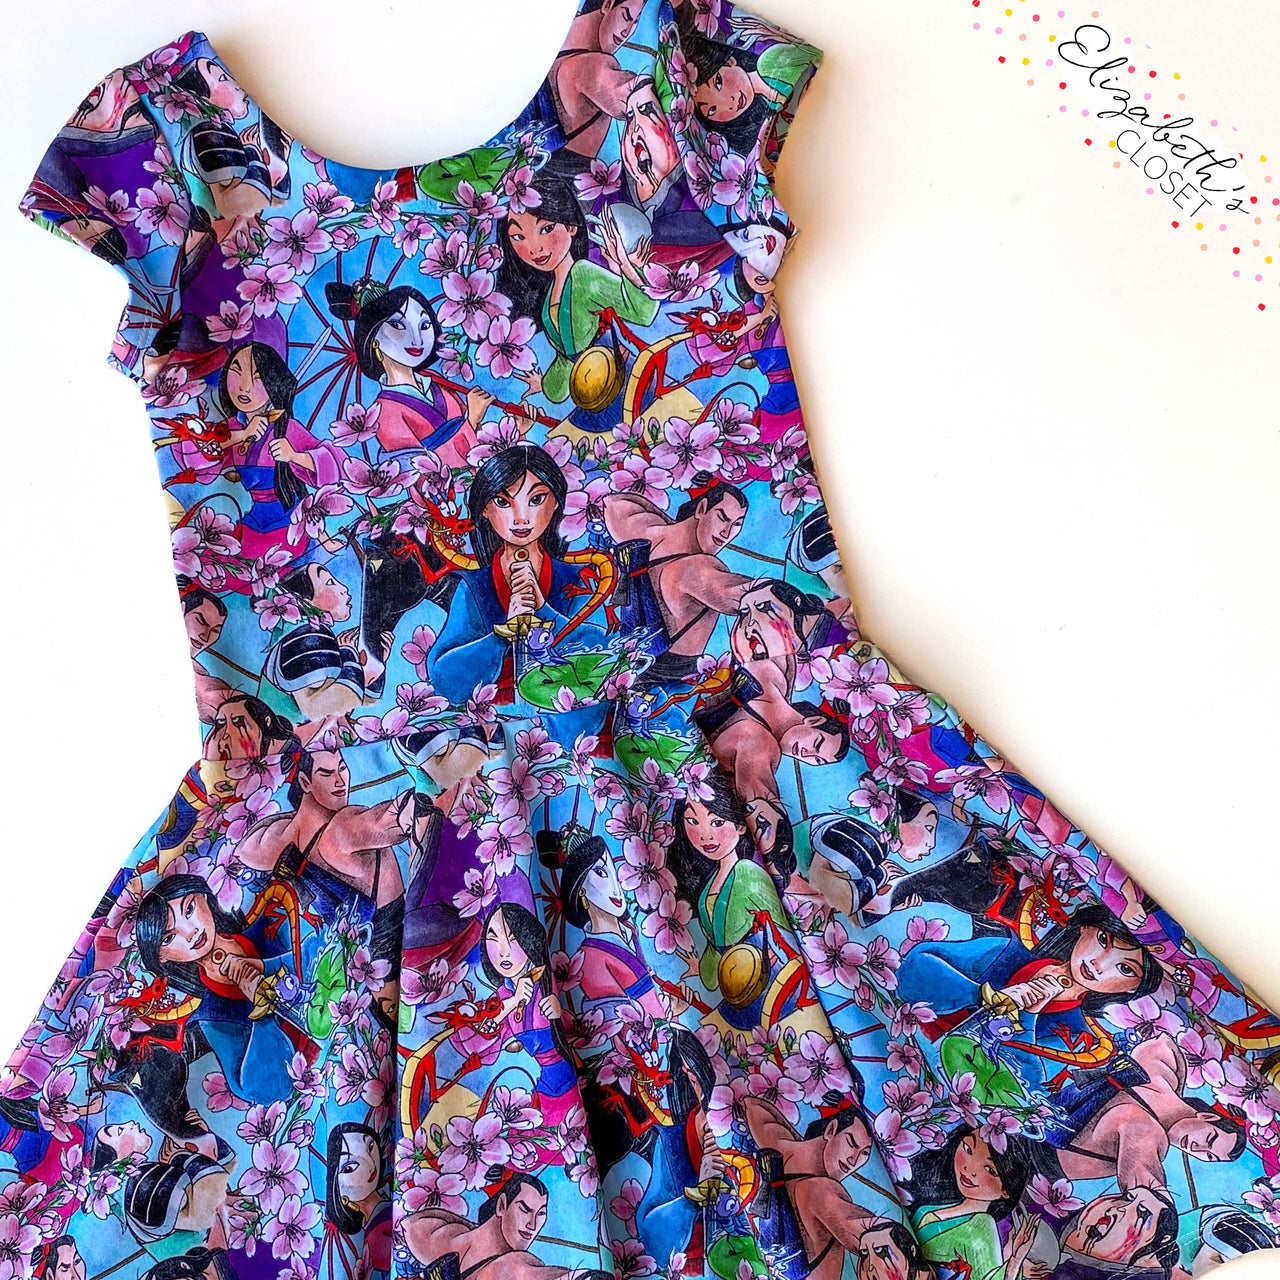 Flower that Blooms Princess Dress